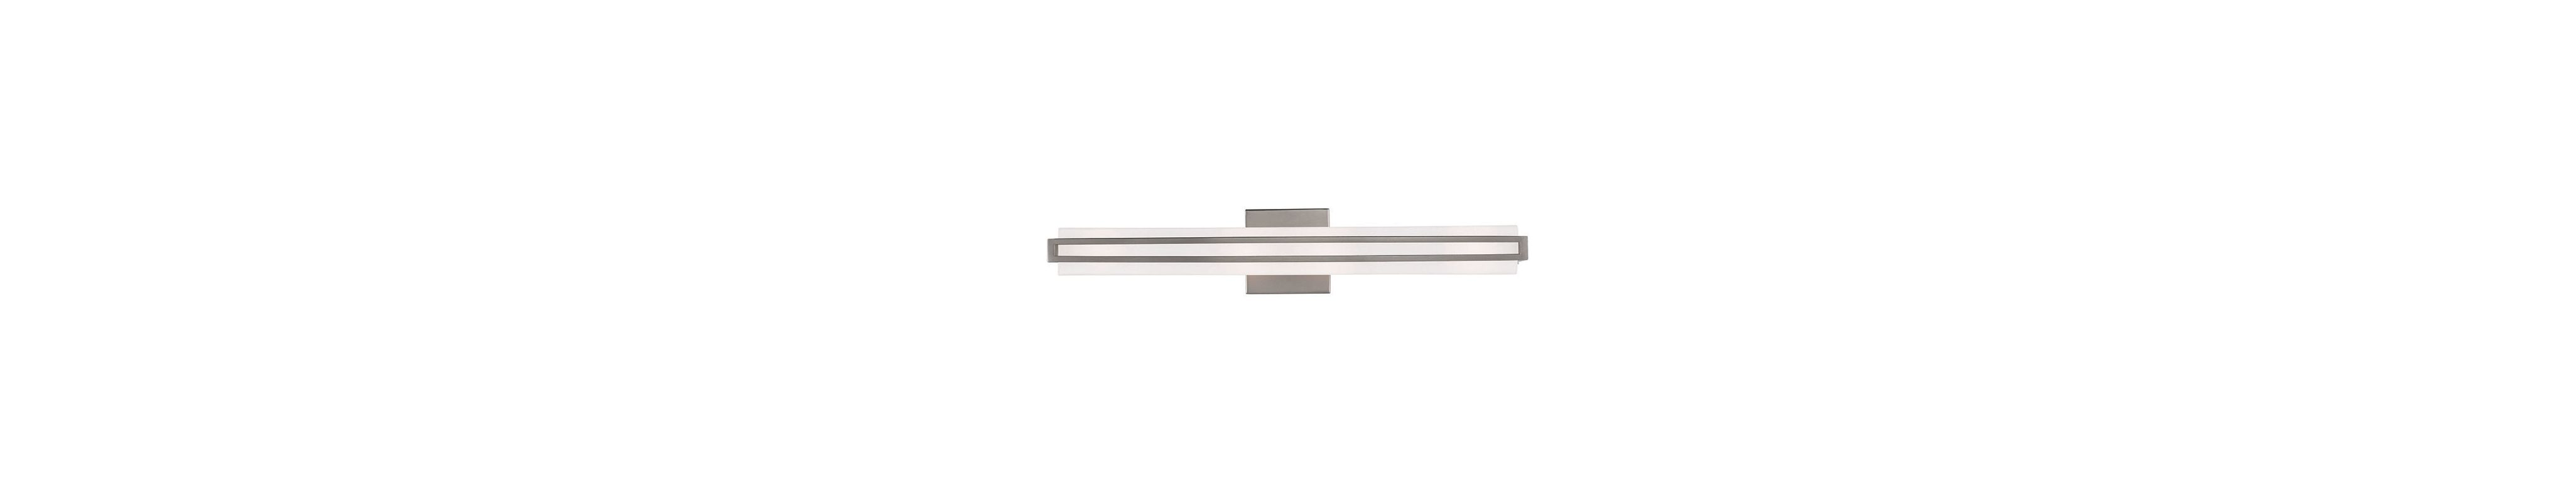 Livex Lighting 16393 Eclipse 1 Light ADA Compliant LED Bath Bar